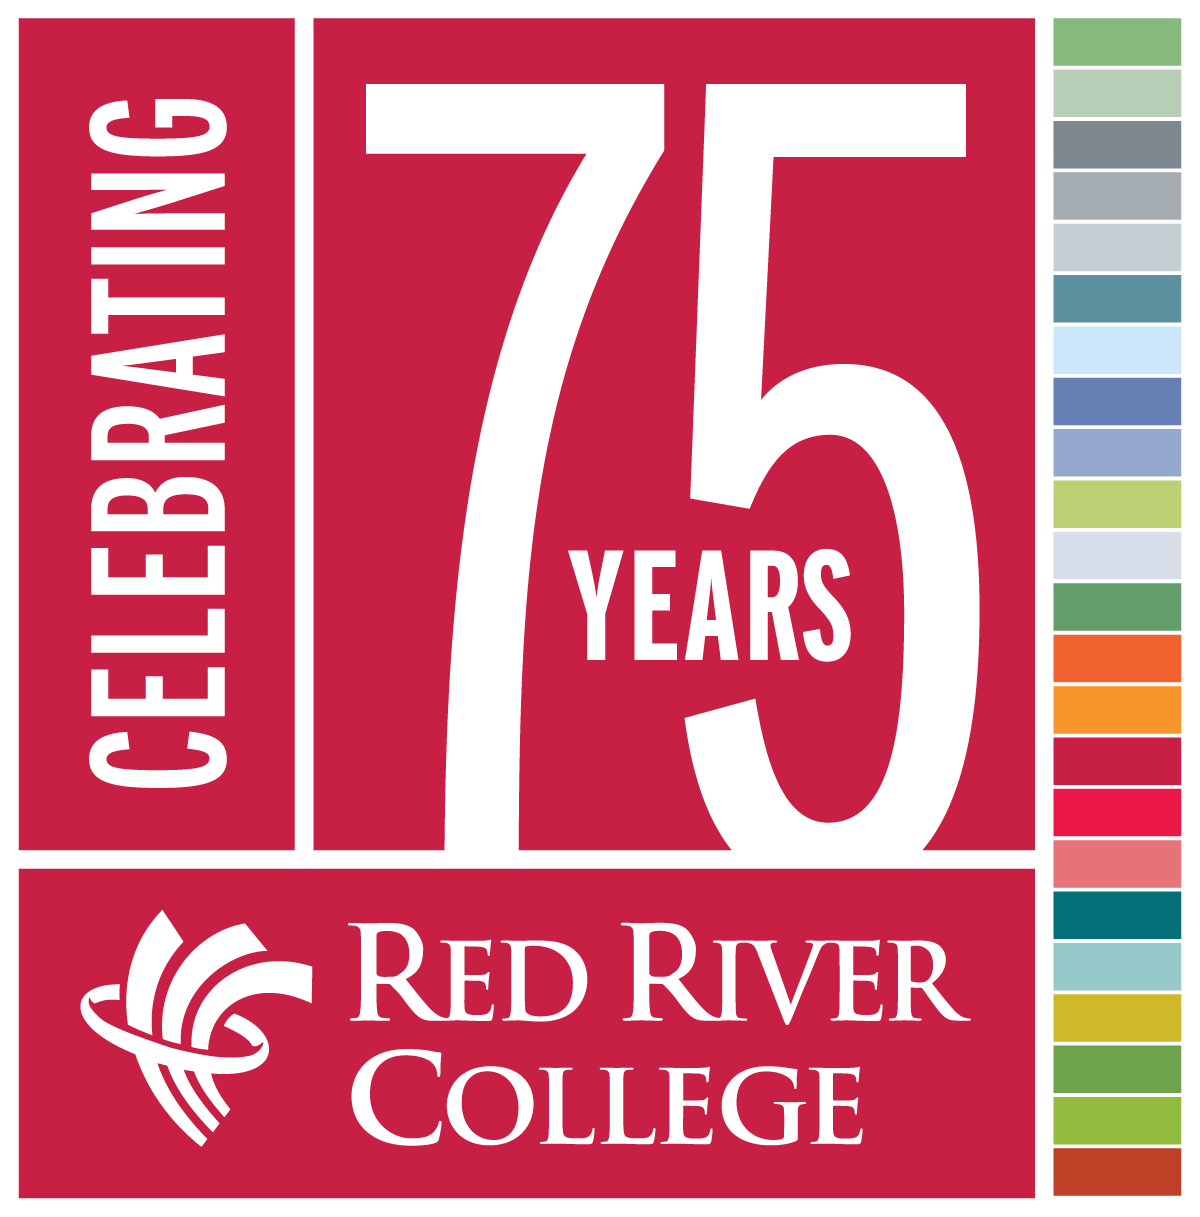 Red River College 89